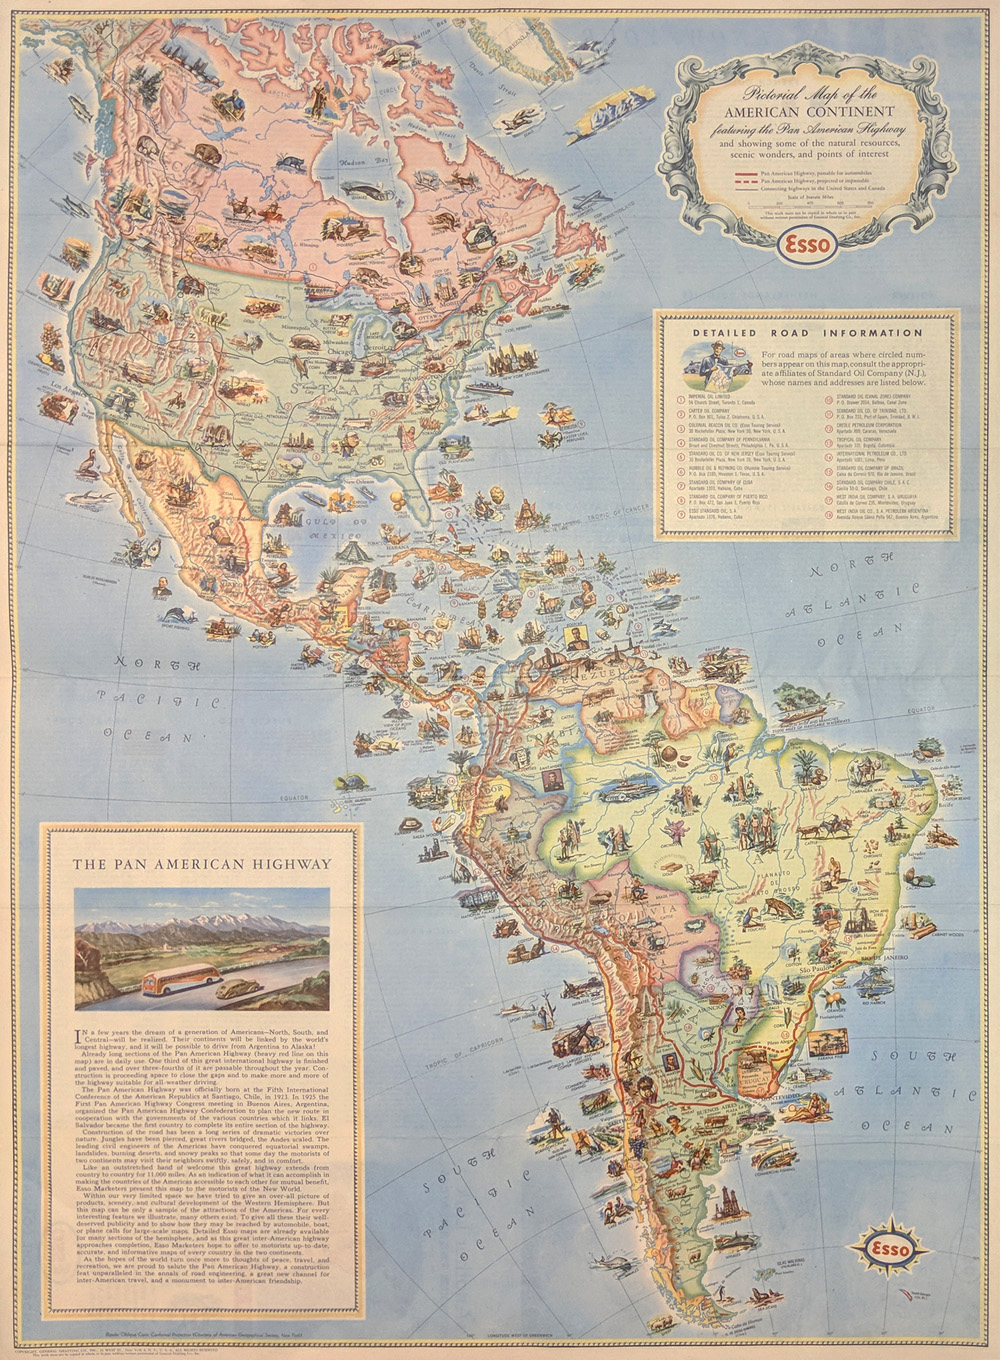 pictorial map of the american continent showing scenic wonders and points of interest printed in color